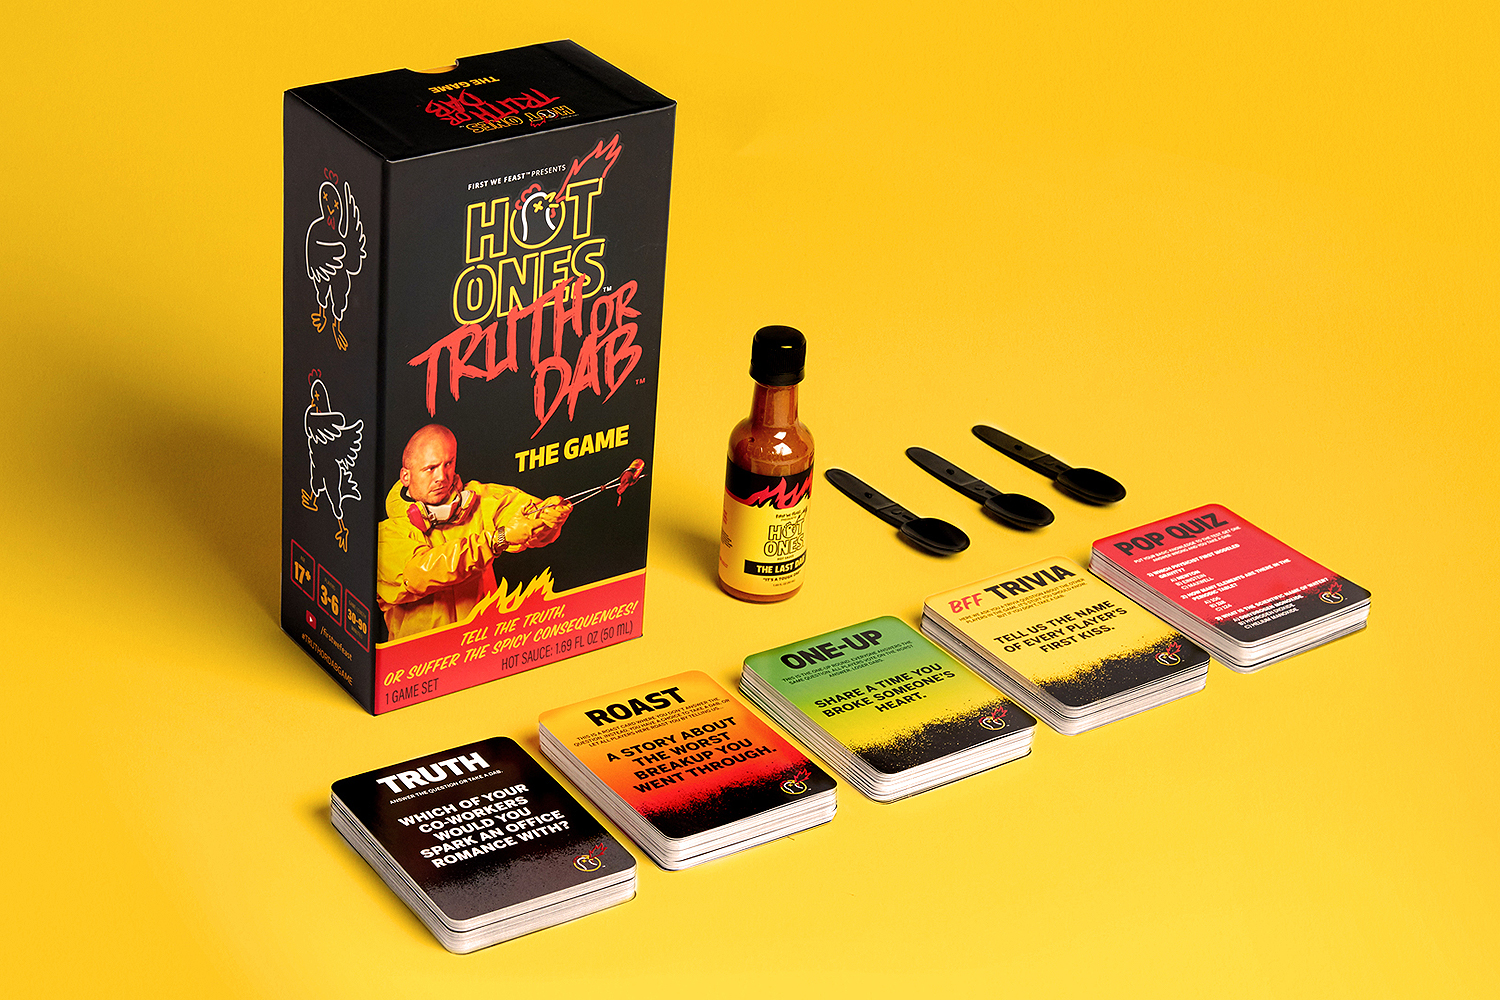 Hot Ones card game